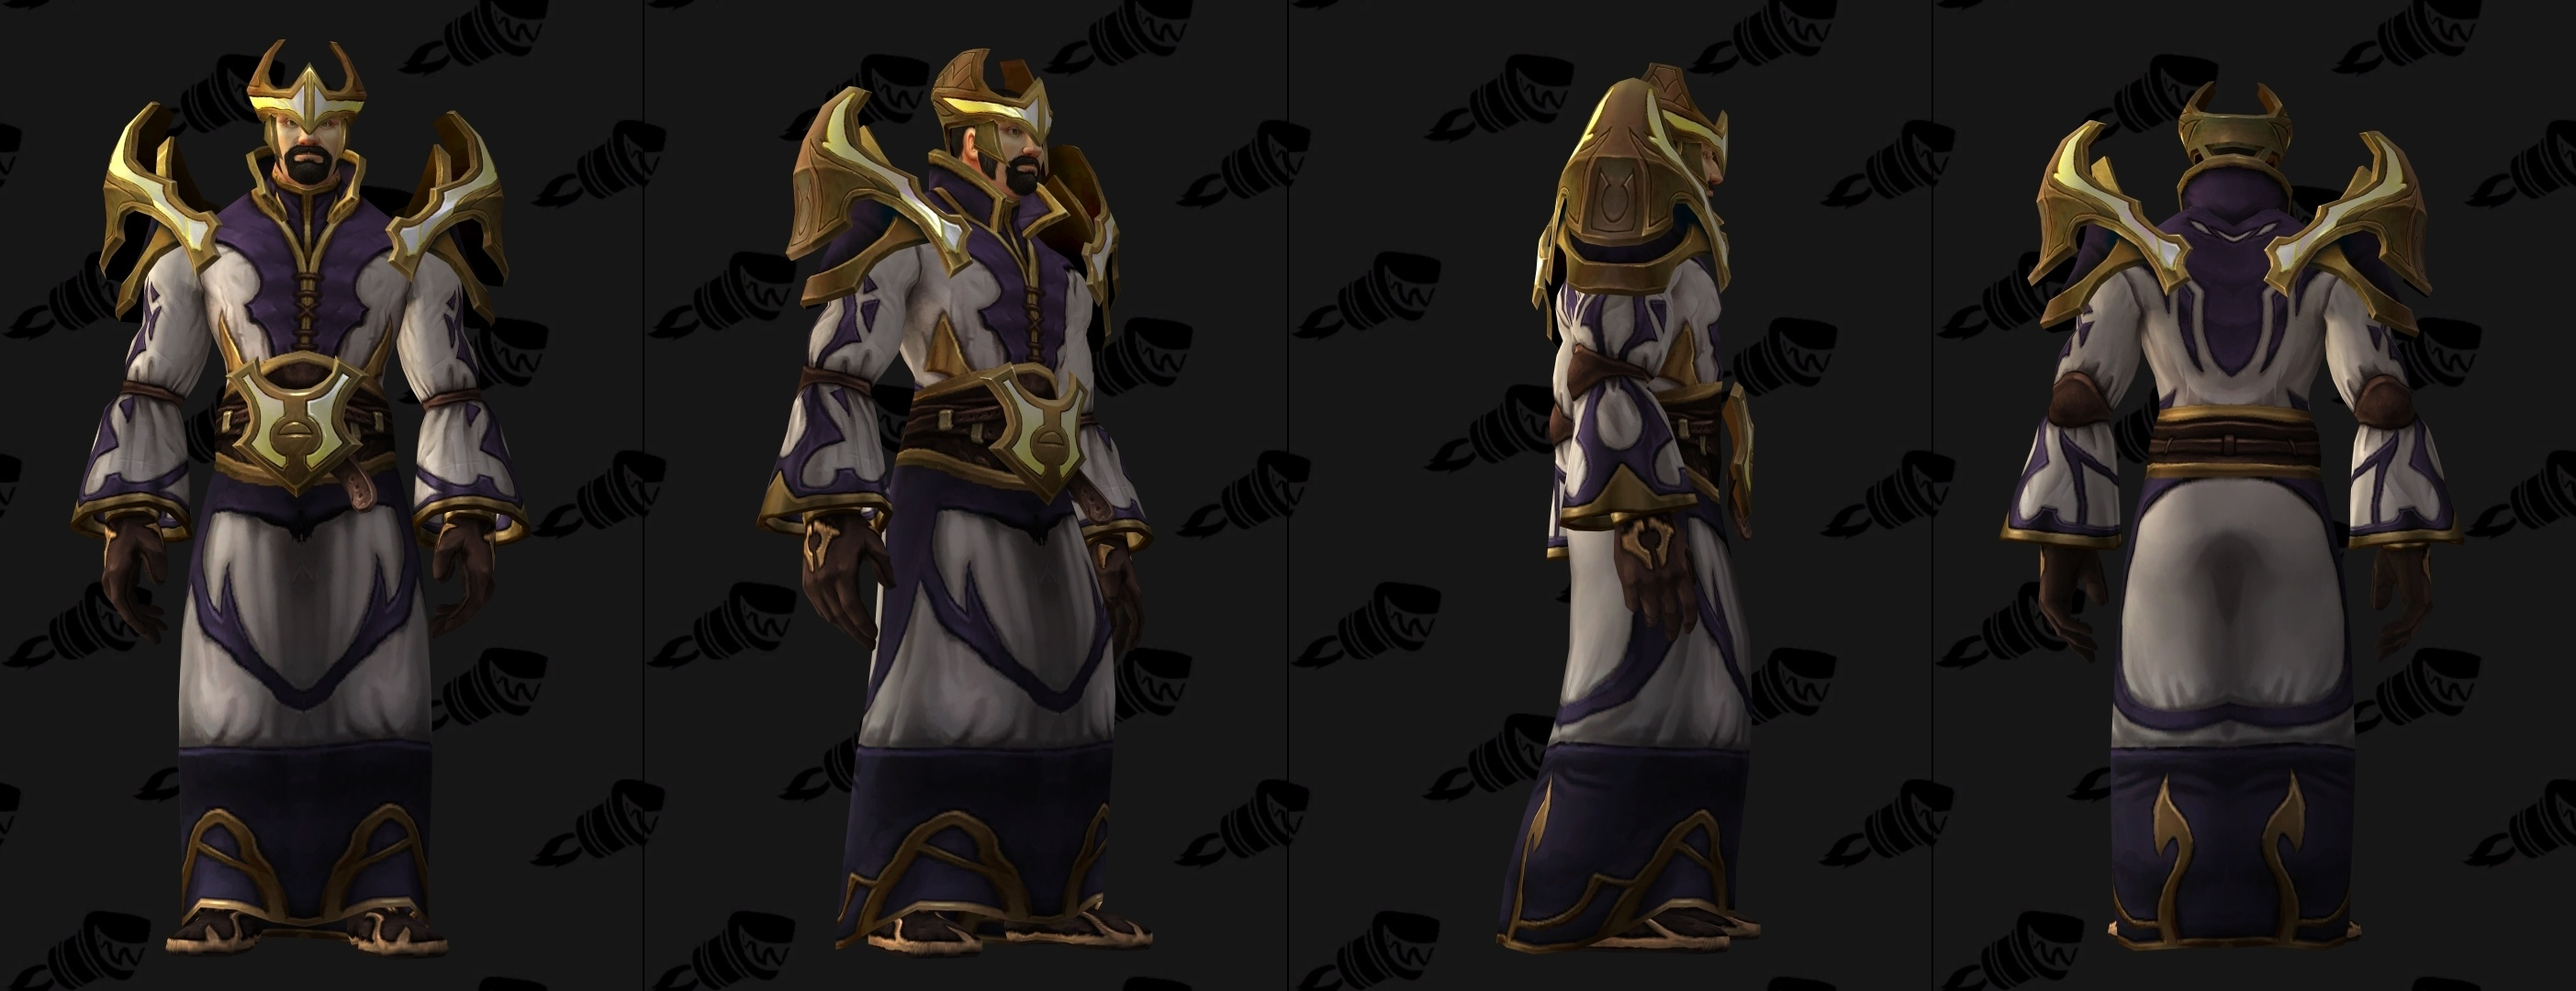 Cloth Argus Set & Patch 7.3 Argus Armor Sets - Wowhead News